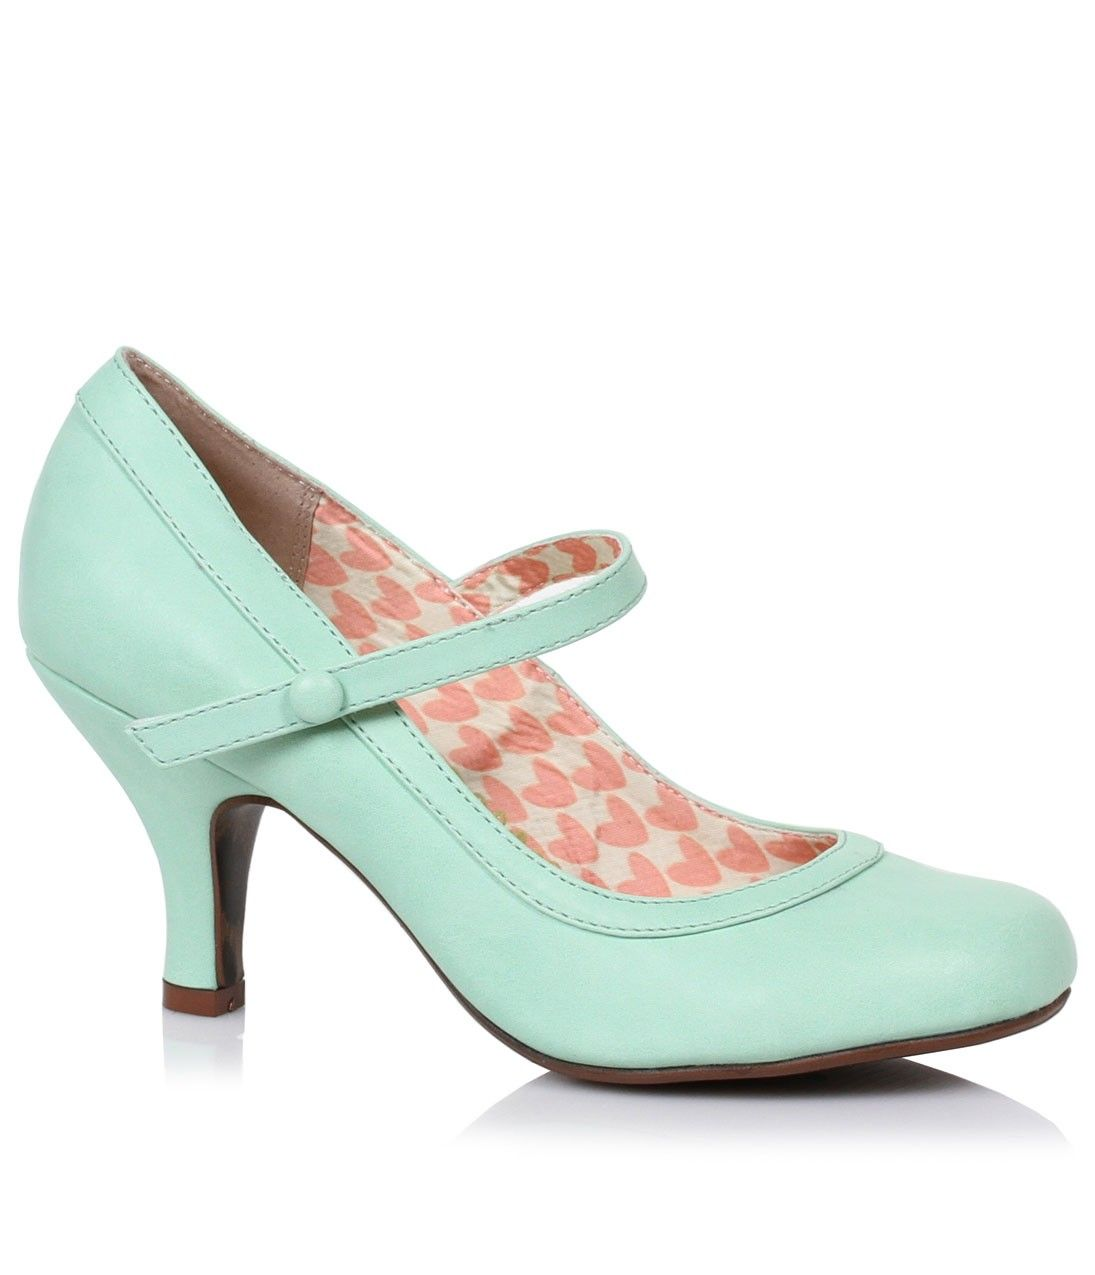 Green shoes · Mint Leatherette Bettie Retro Mary Jane Heels